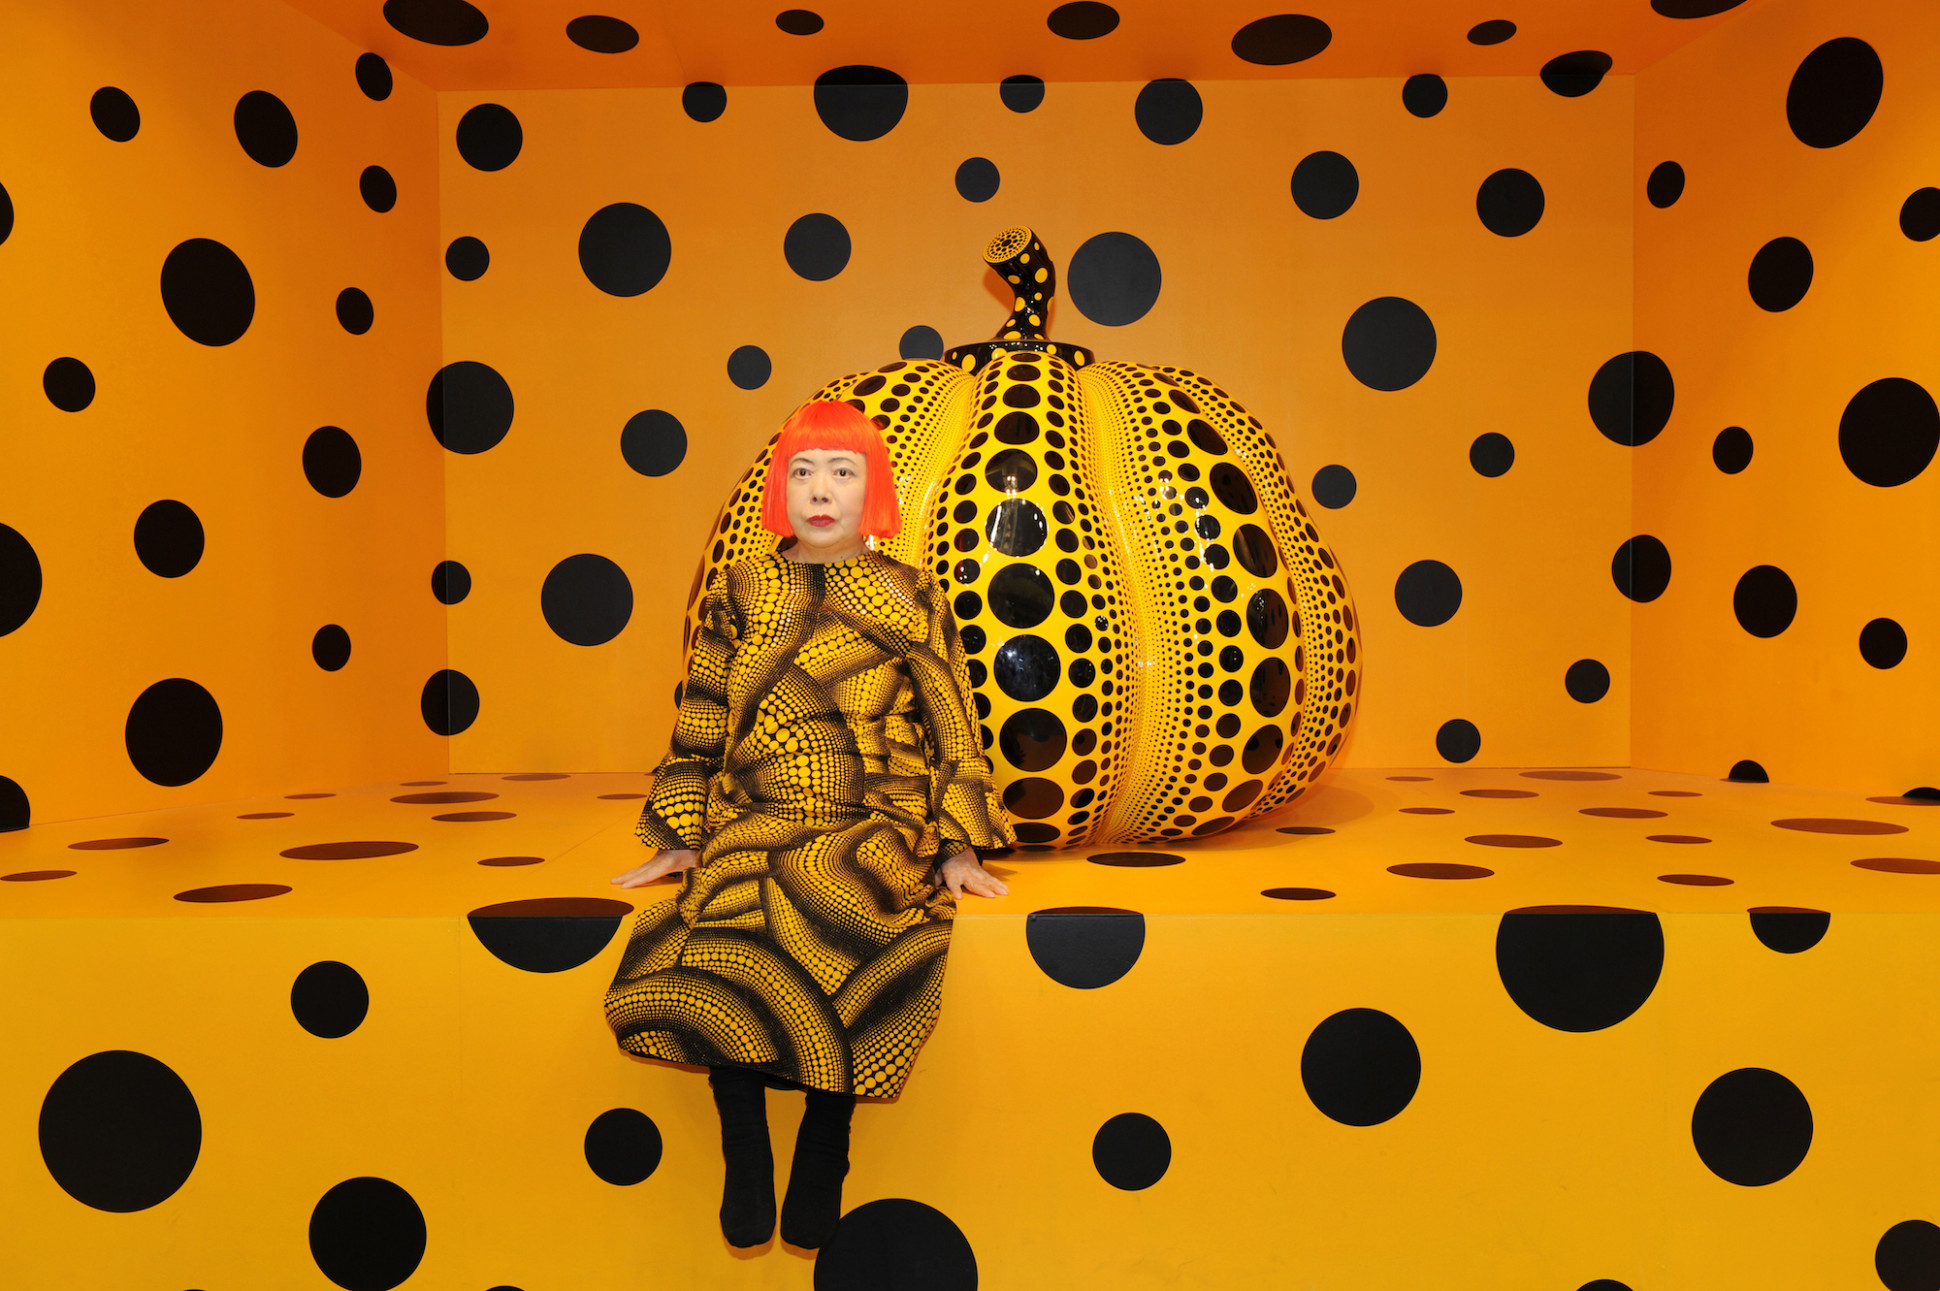 Major Yayoi Kusama Exhibit at New York Botanical Garden Postponed ..